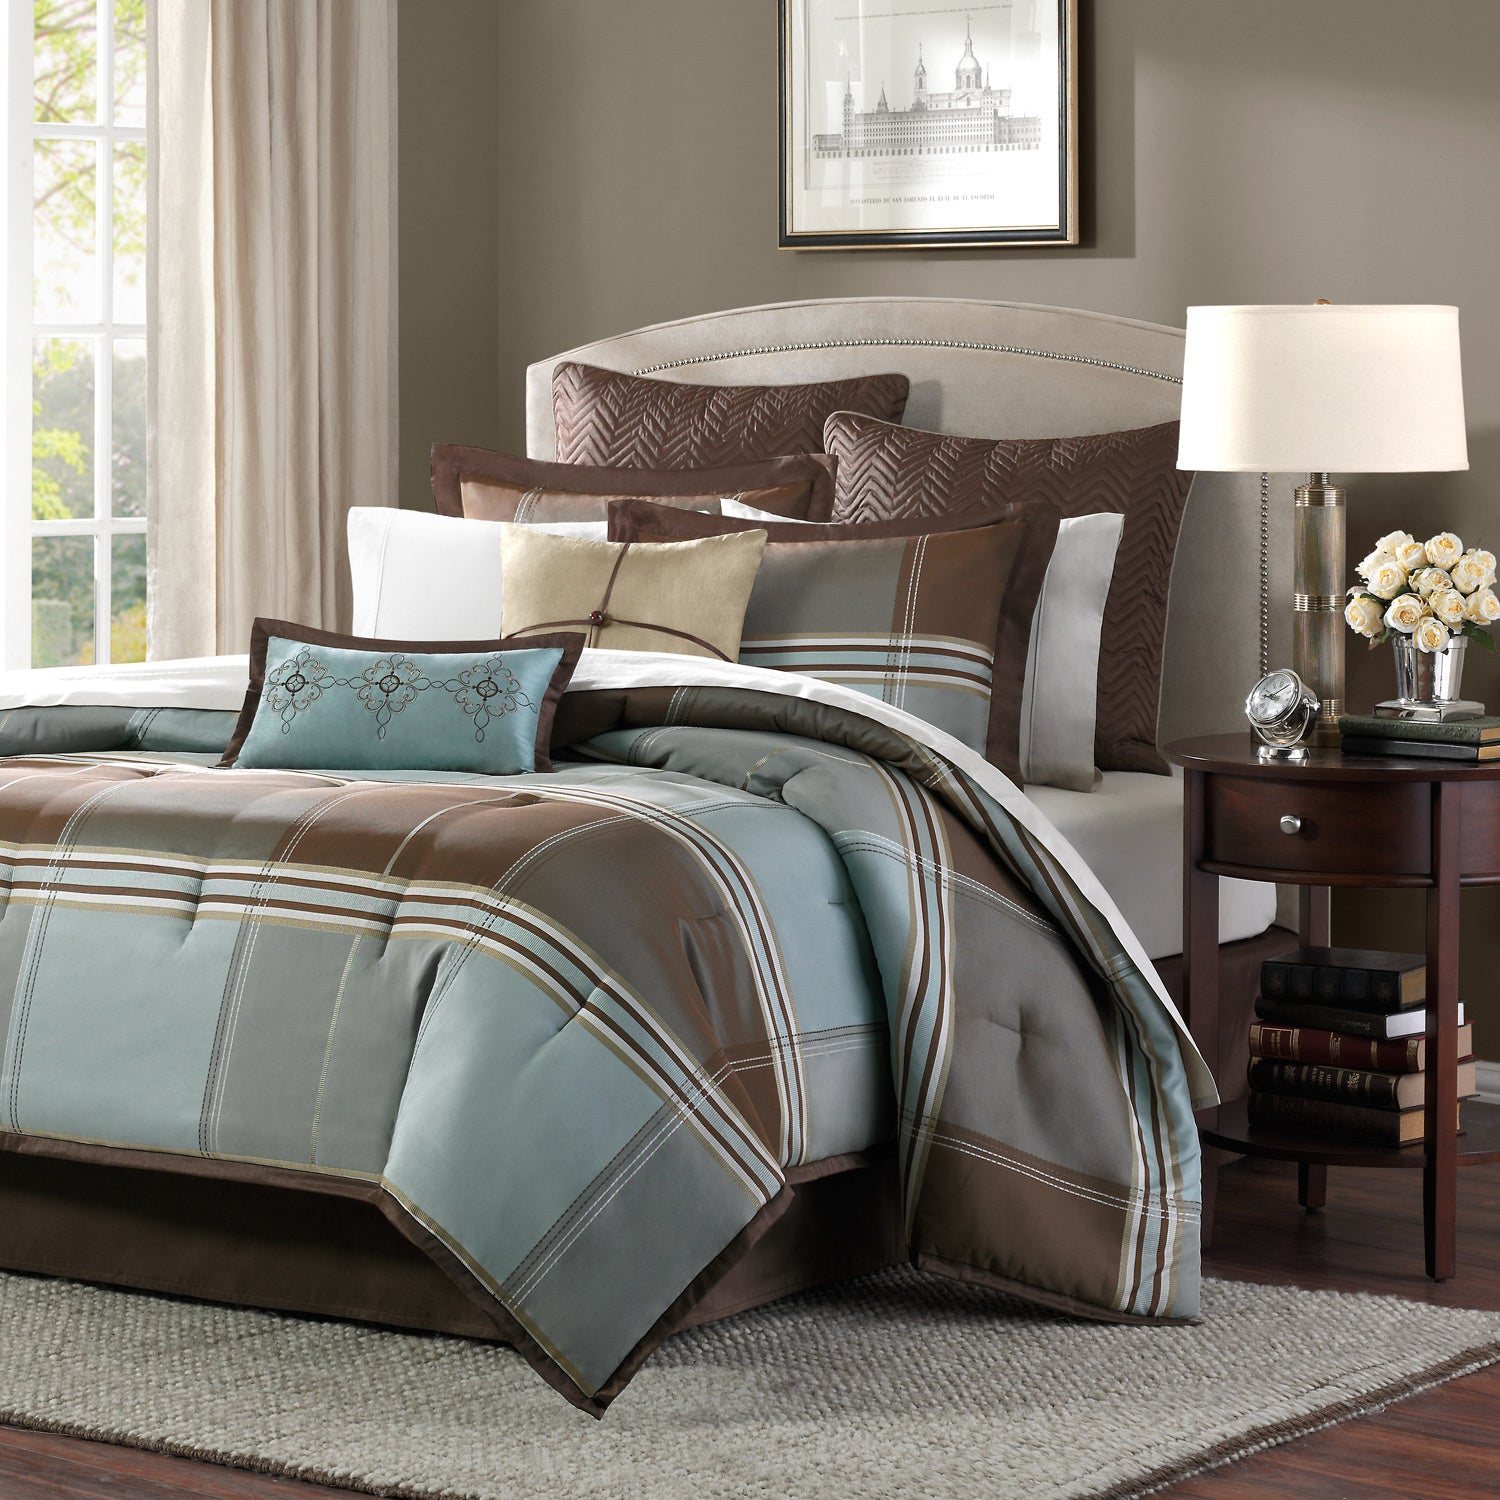 Genial Shop Madison Park Davenport Blue/ Brown 8 Piece Comforter Set   Free  Shipping On Orders Over $45   Overstock   5955613